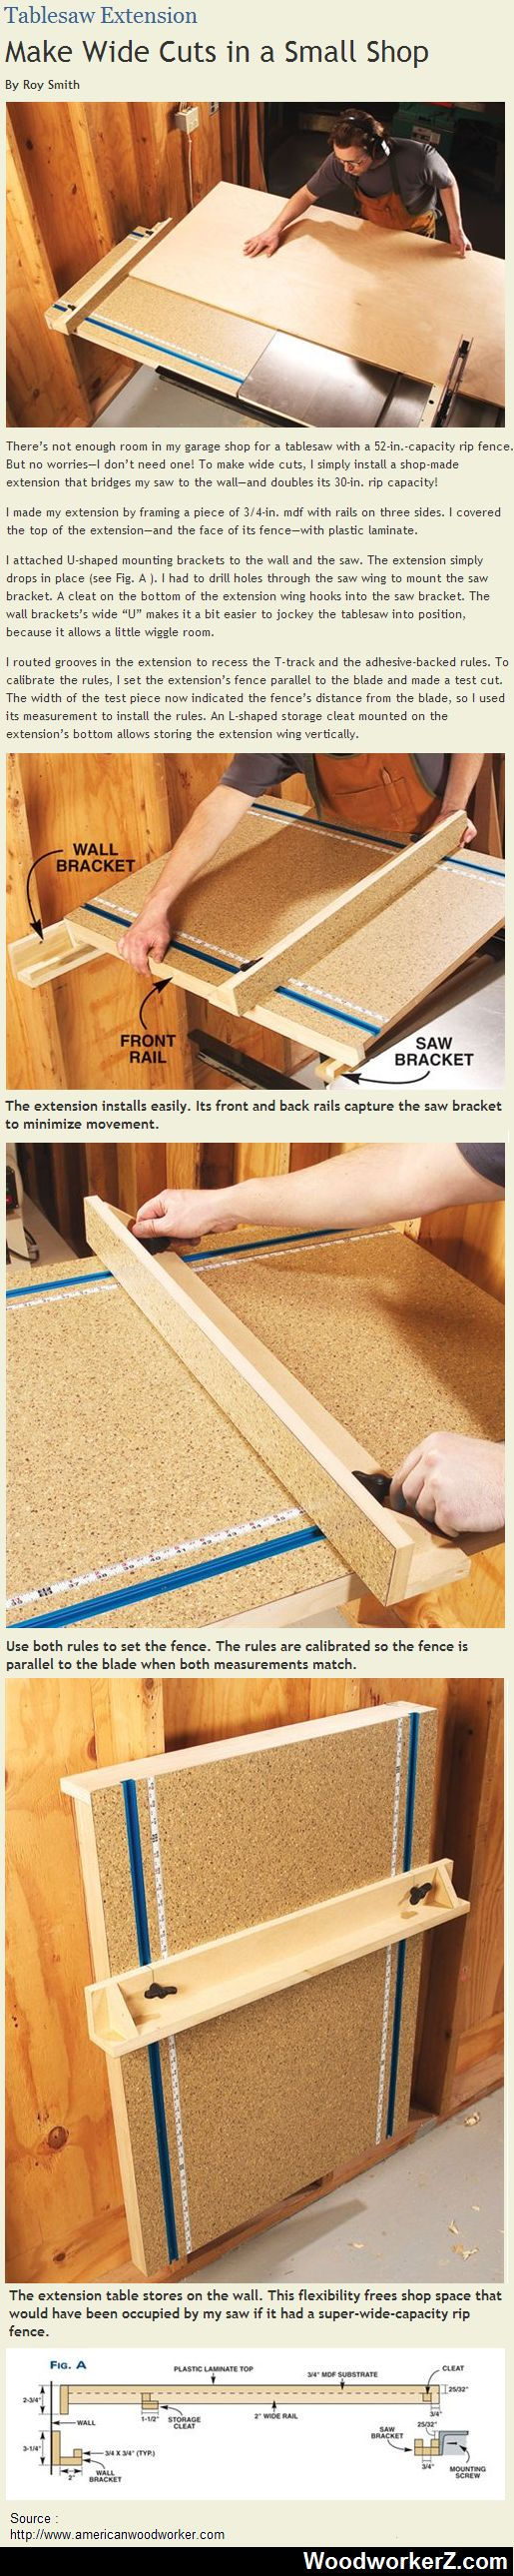 Tablesaw Extension - make wide cuts in a small shop